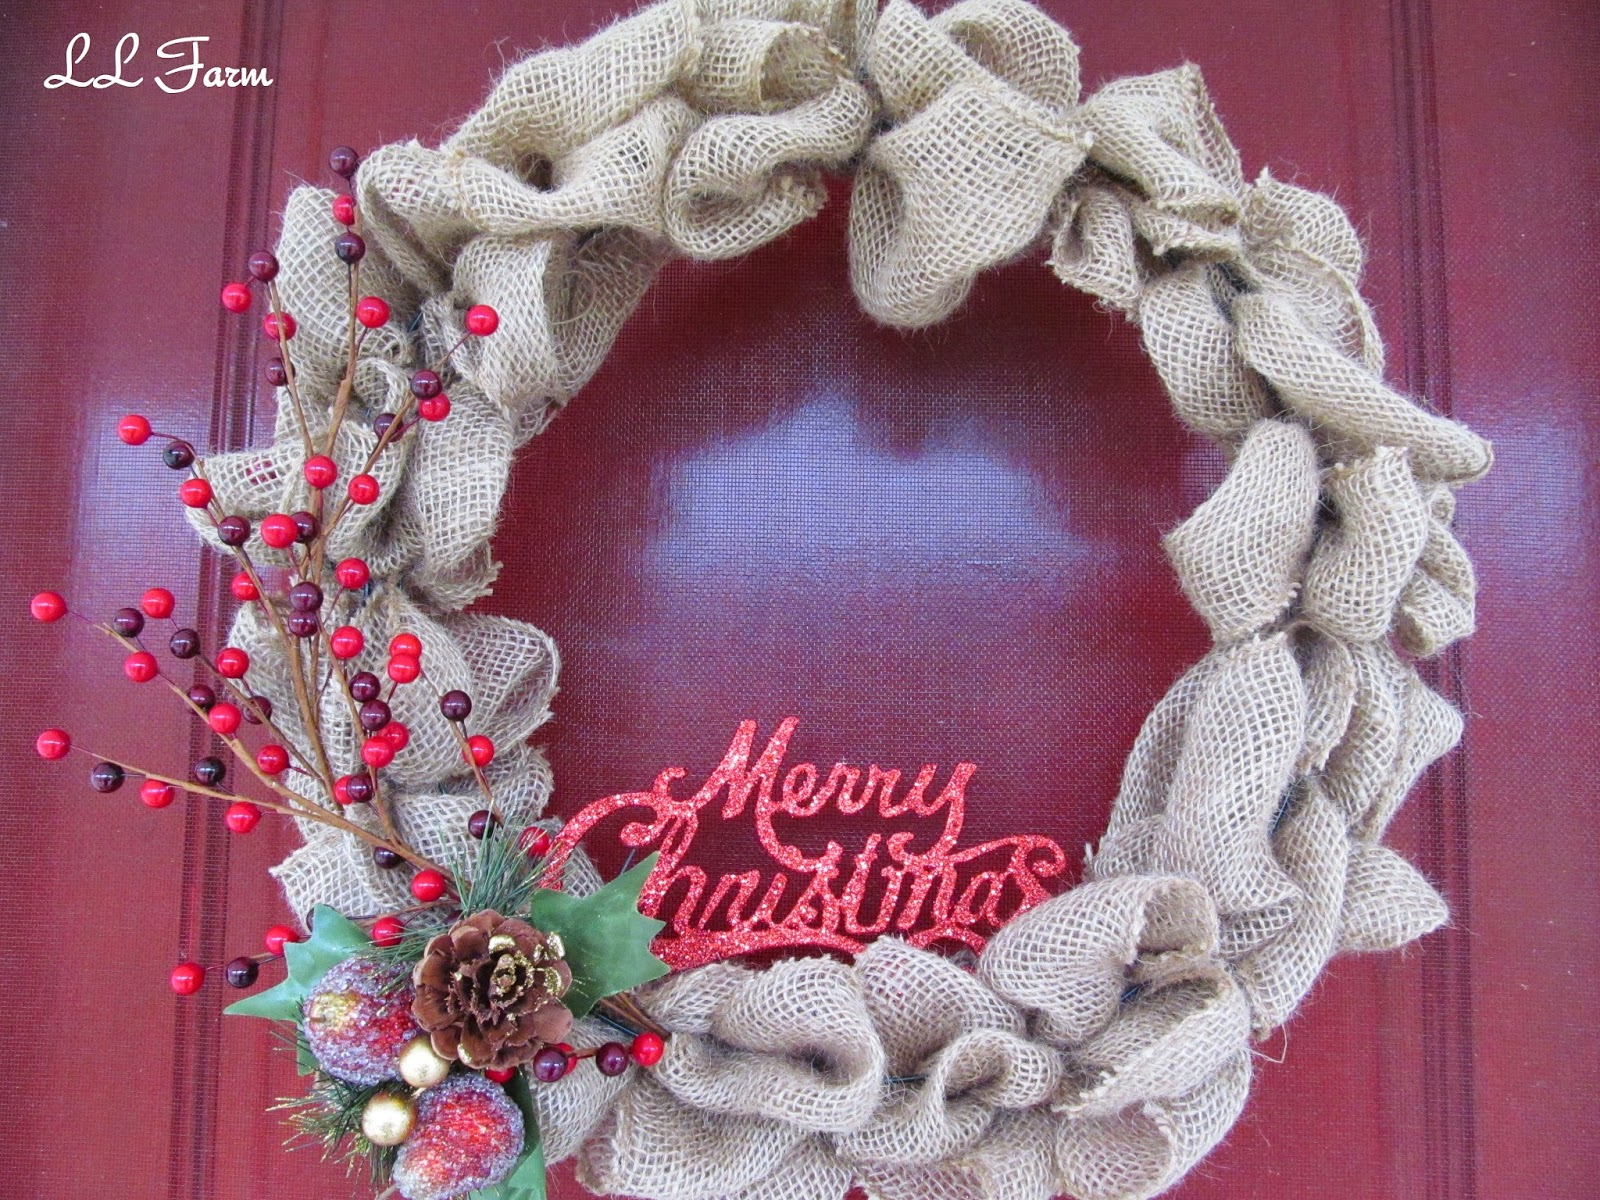 last week i made a burlap wreath to see how i made it click here today i want to show how i decorated it for my front door all decked out for - Burlap Christmas Door Decorations